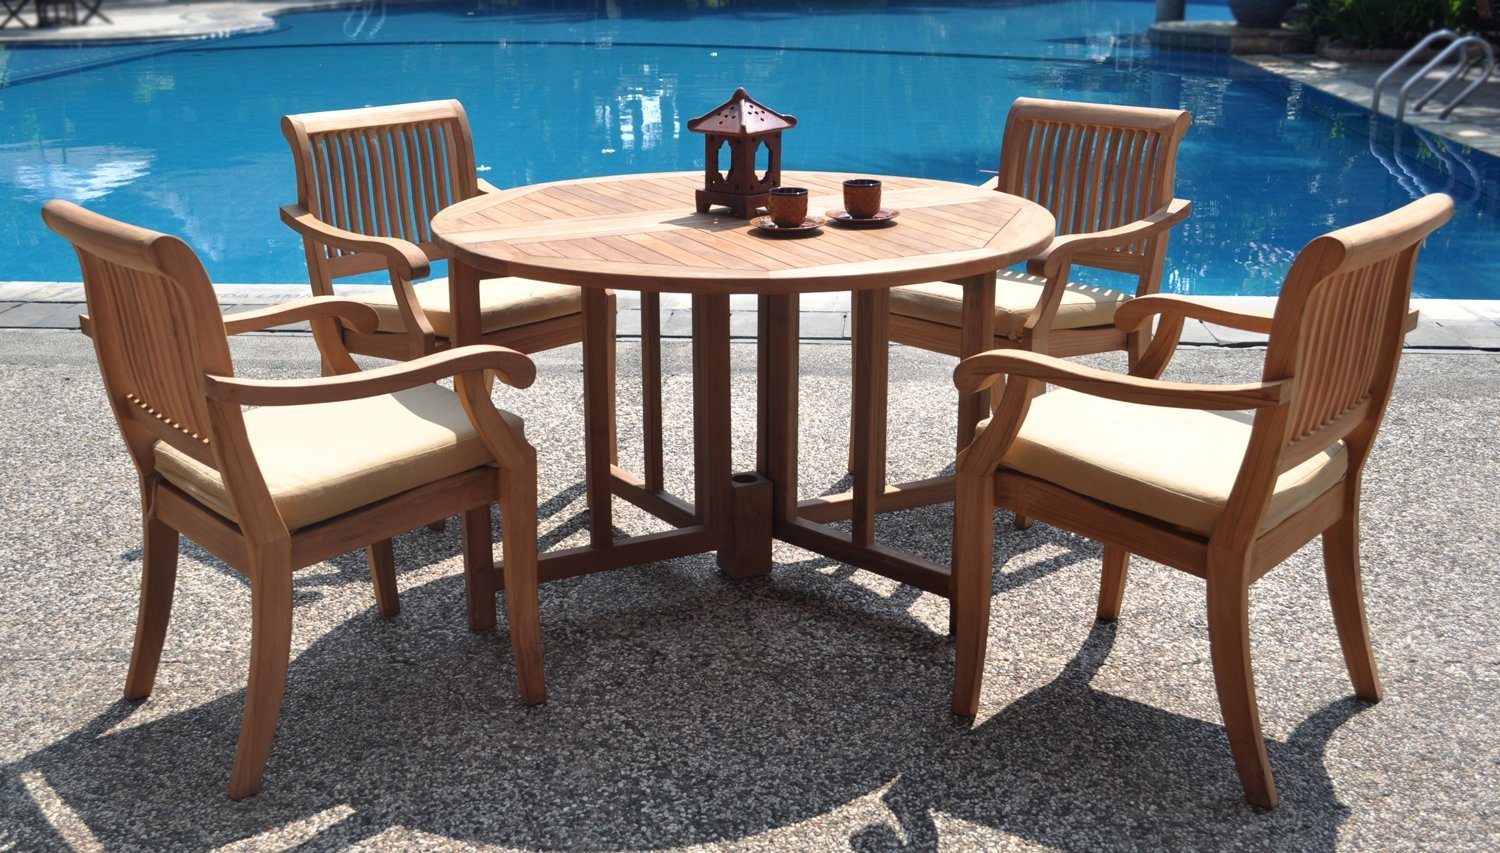 teak garden furniture 5 piece grade a teak dining set 48 inch round table LBLMZSC